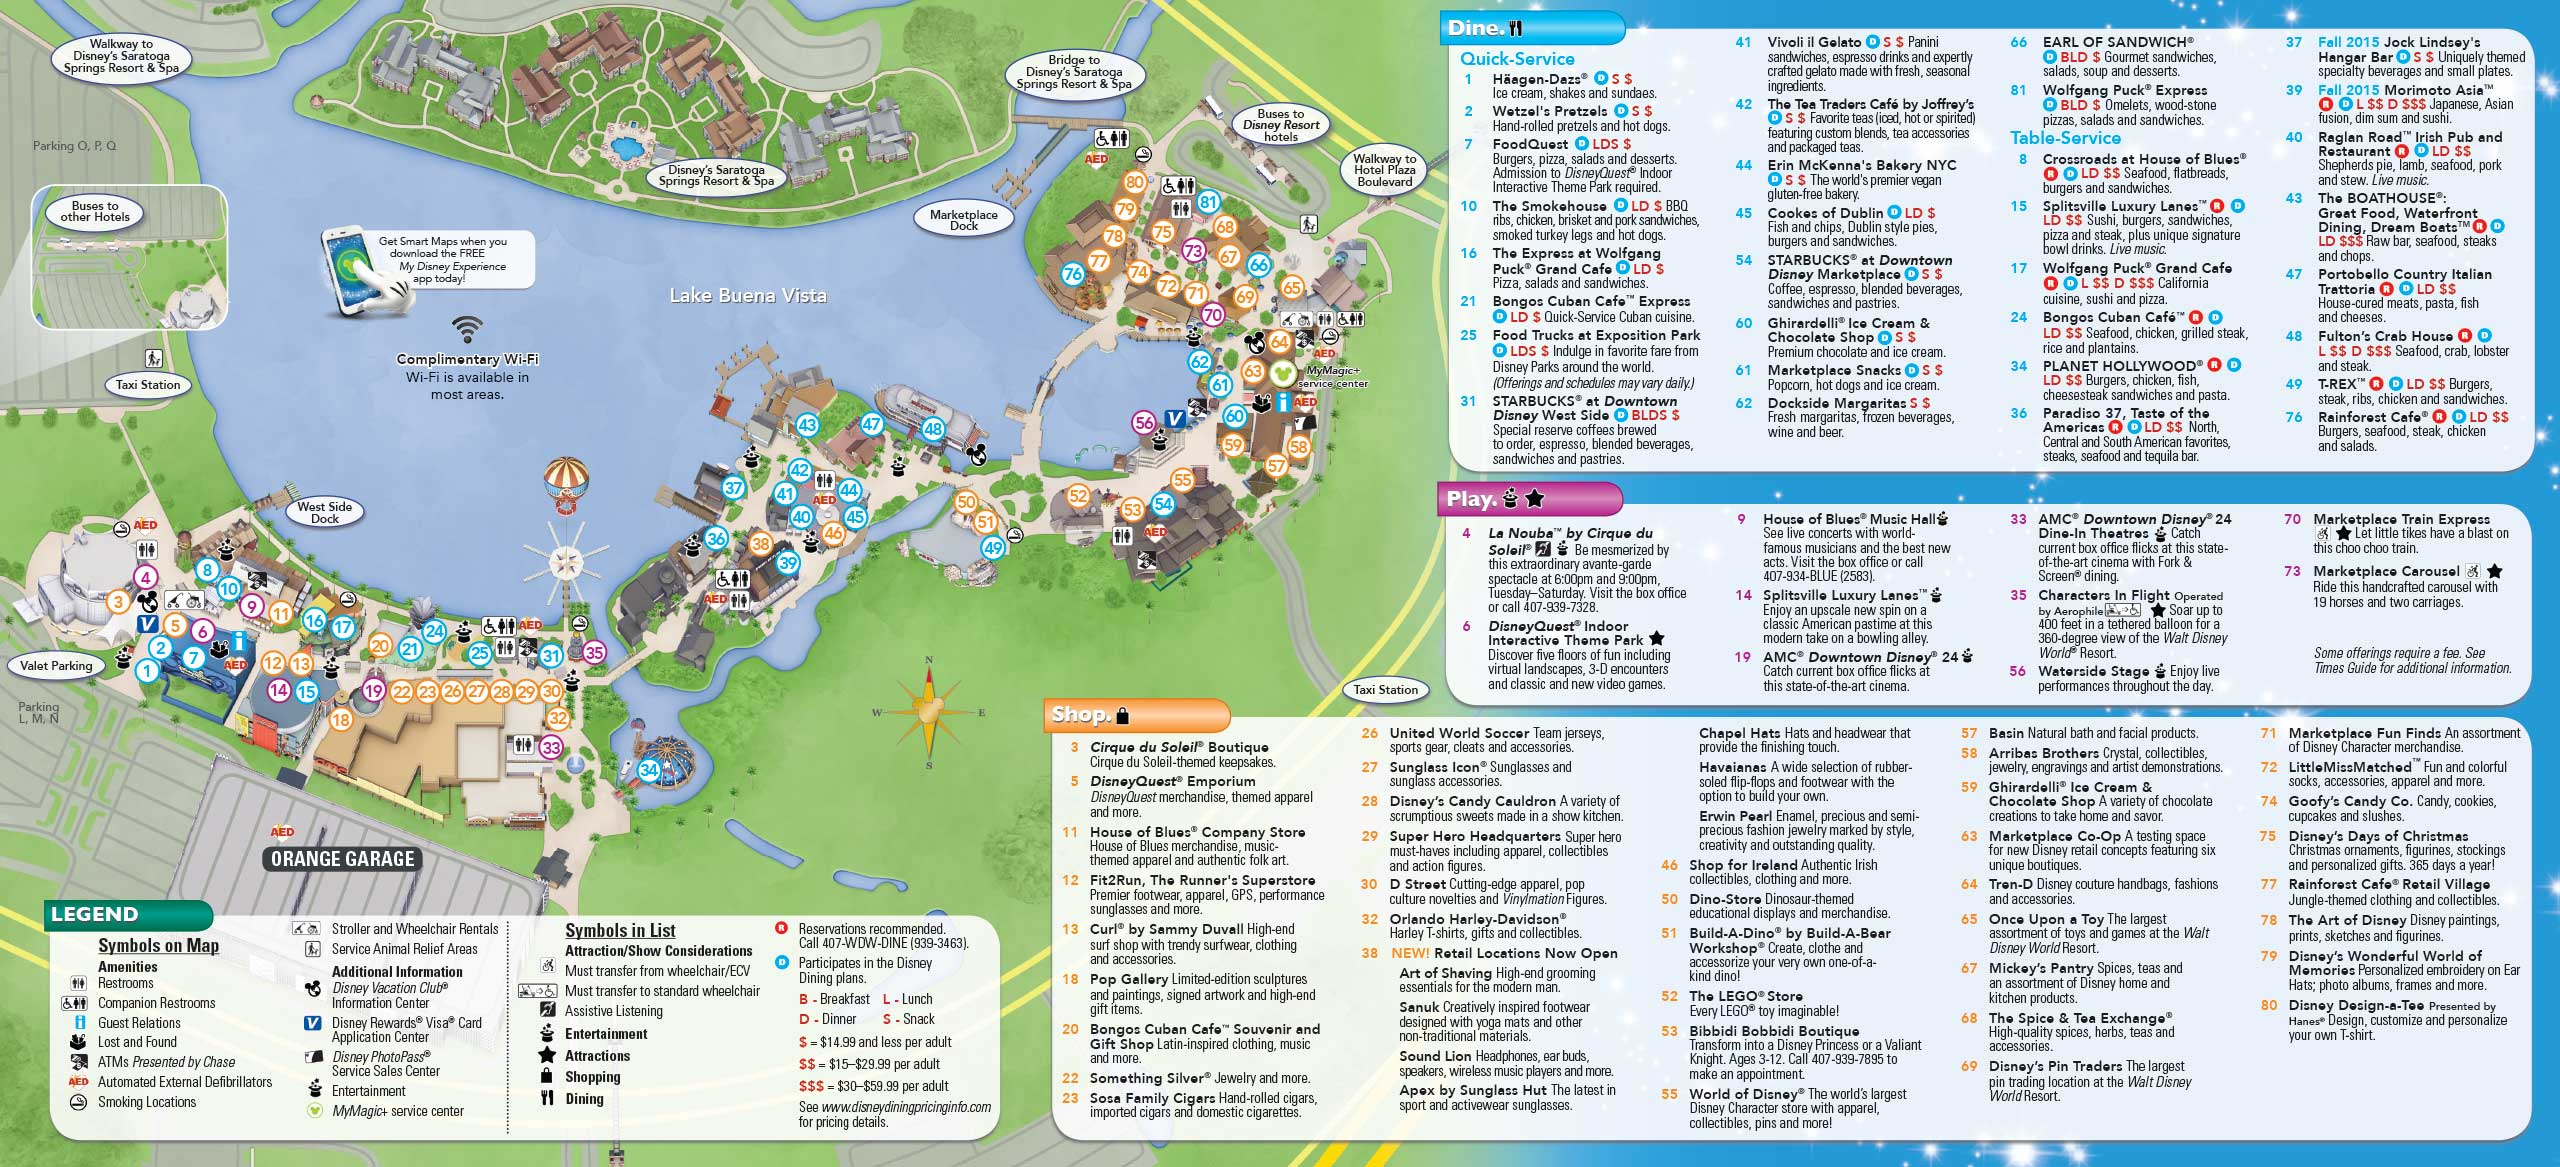 PHOTOS - New Downtown Disney guide map includes Disney Springs ...